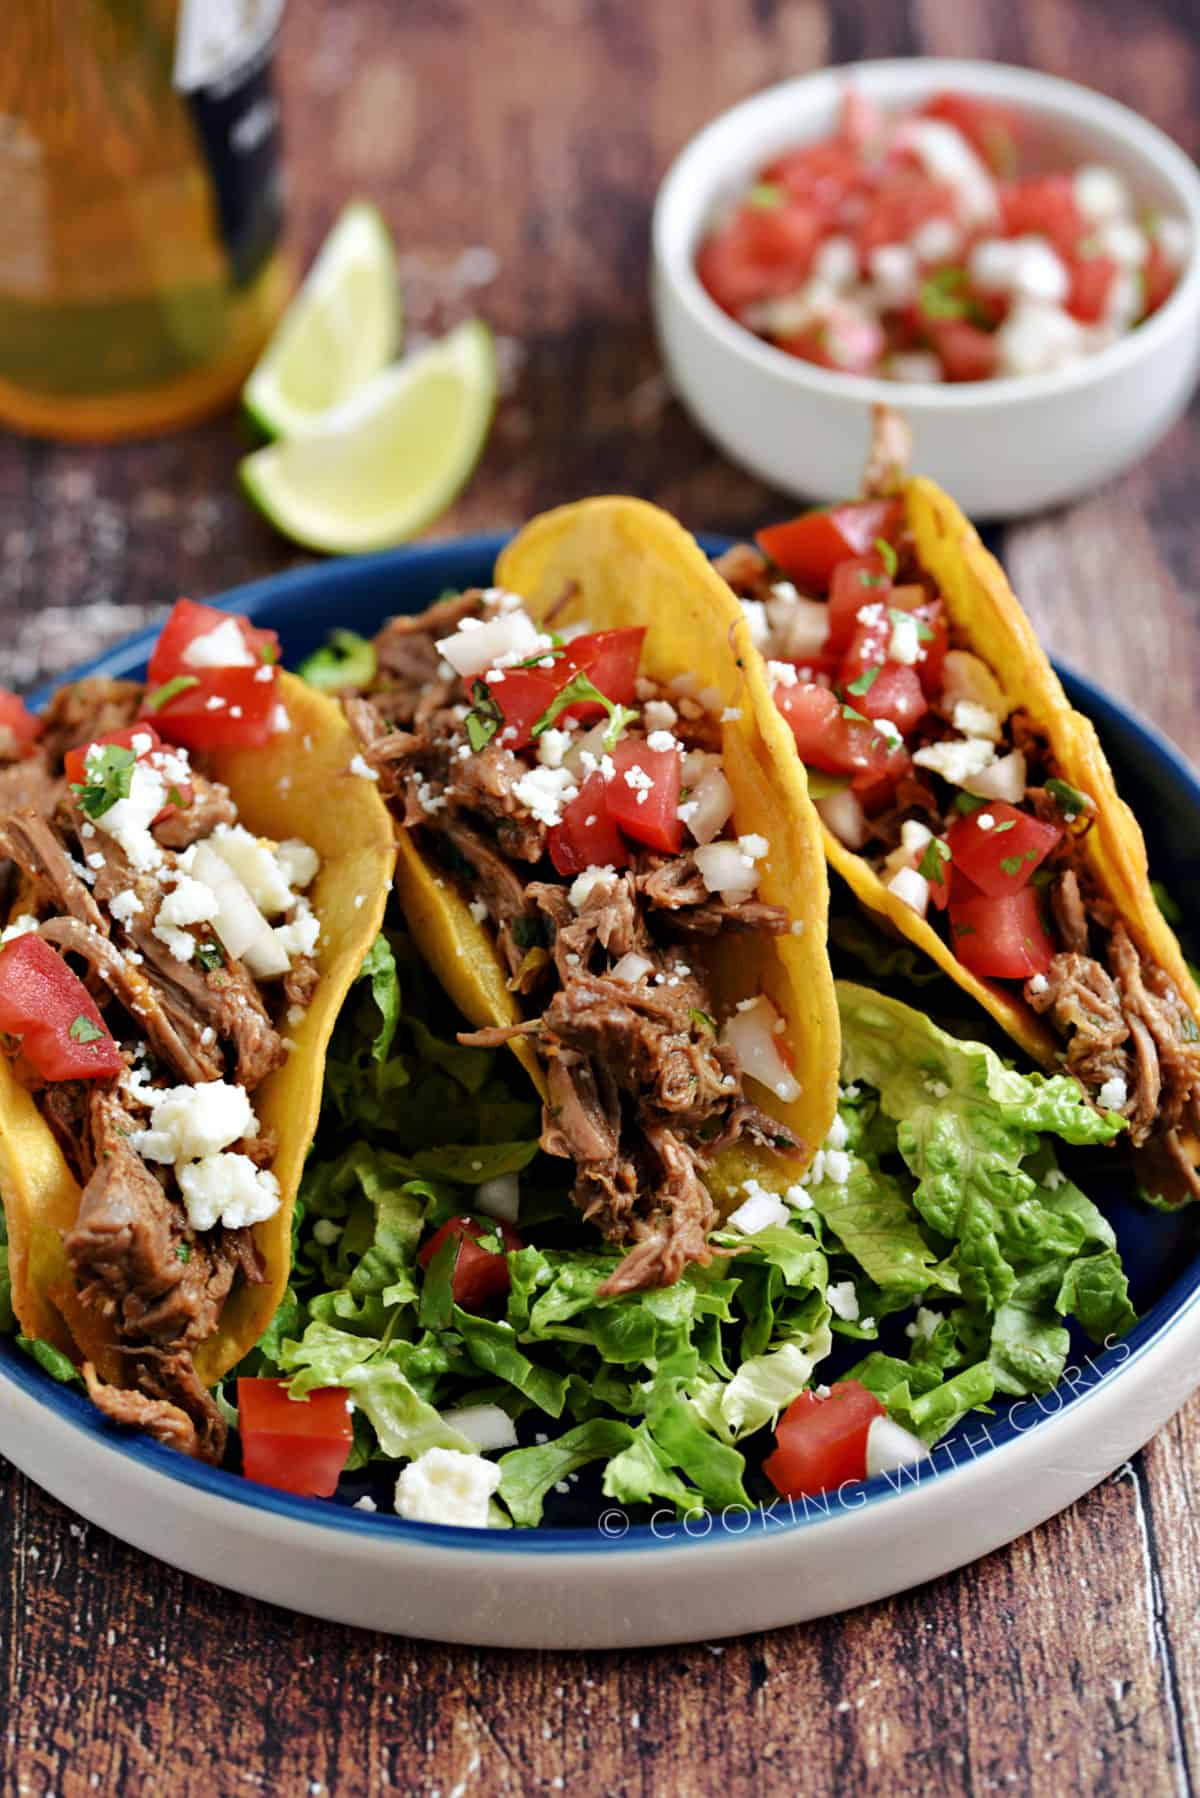 Three Mexican Shredded Beef hard-shell tacos on a bed of shredded lettuce with a bowl of pico, a bottle of beer and two lime wedges in the background.